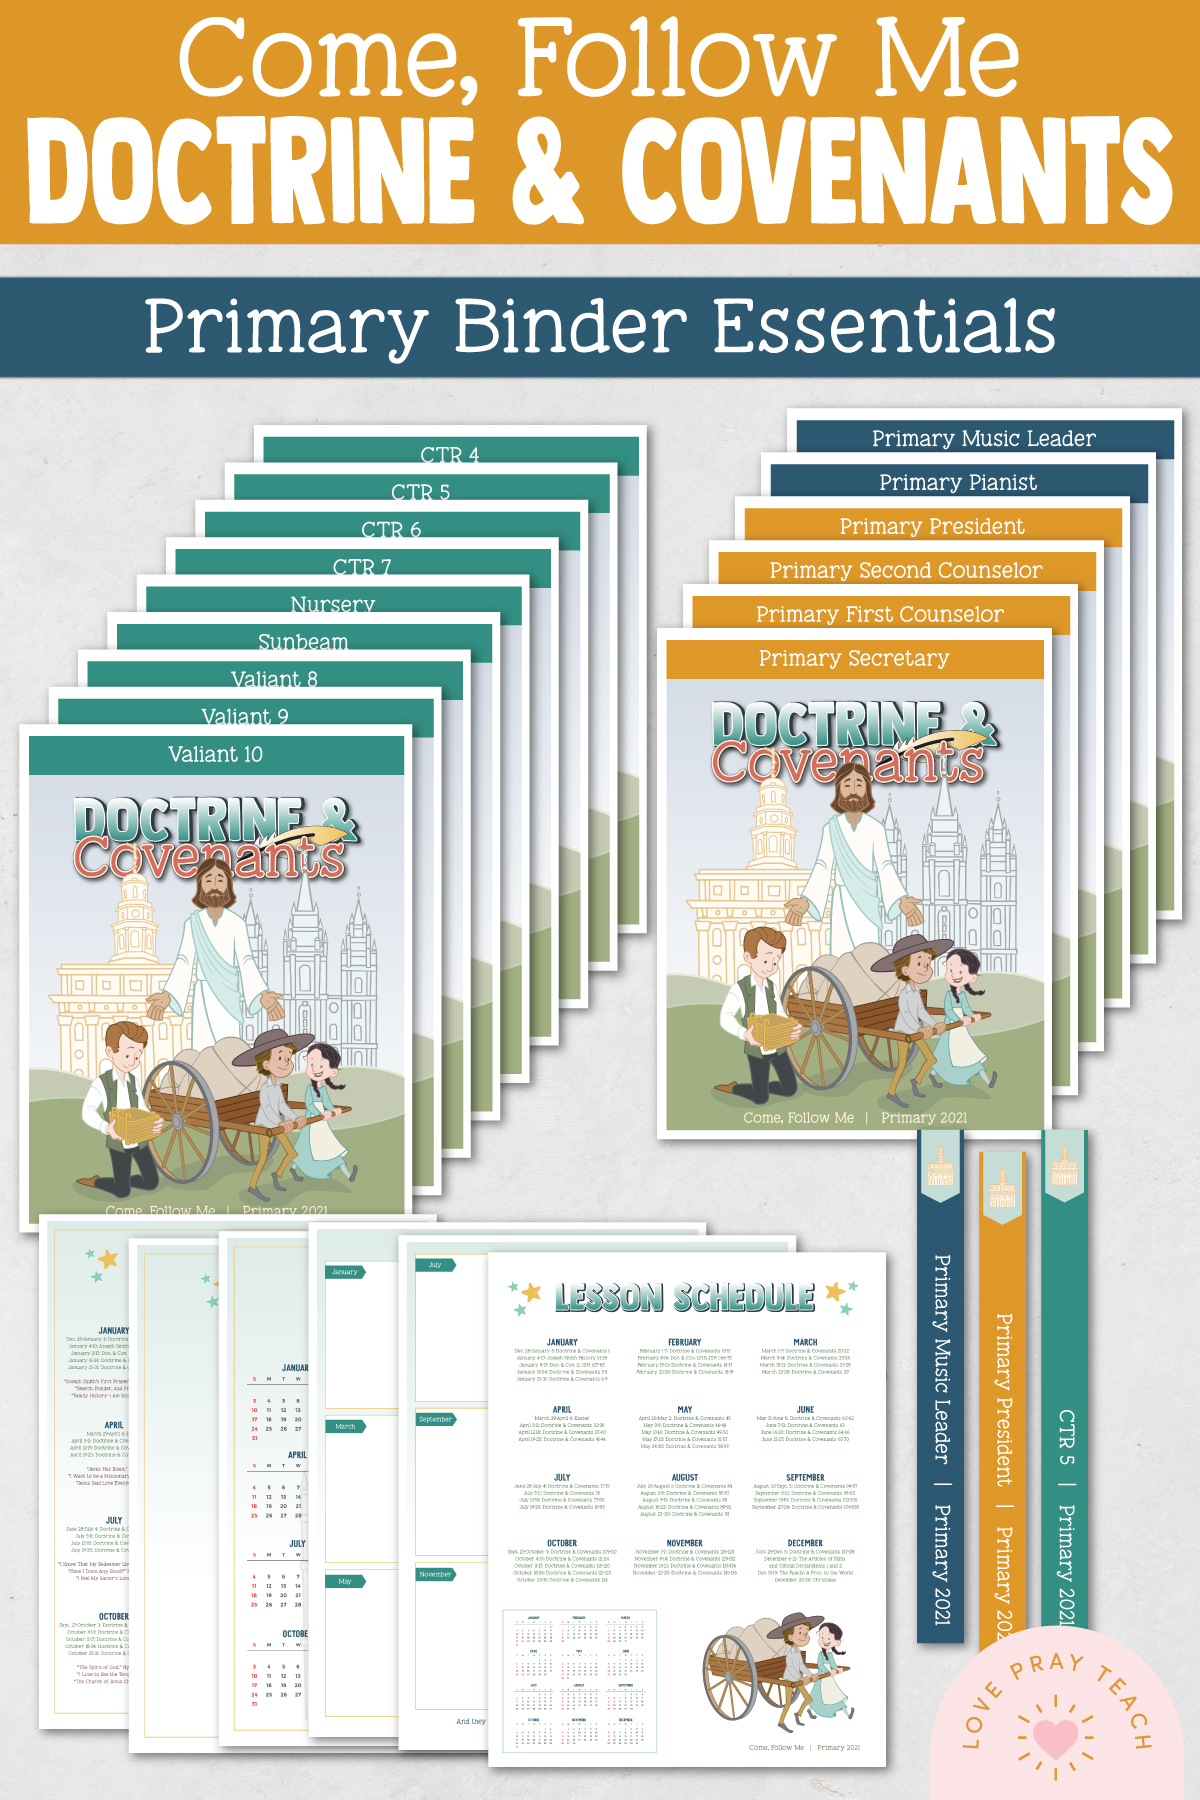 Come, Follow Me—For Primary: Doctrine and Covenants 2021 Download For Binder Essentials Packet!